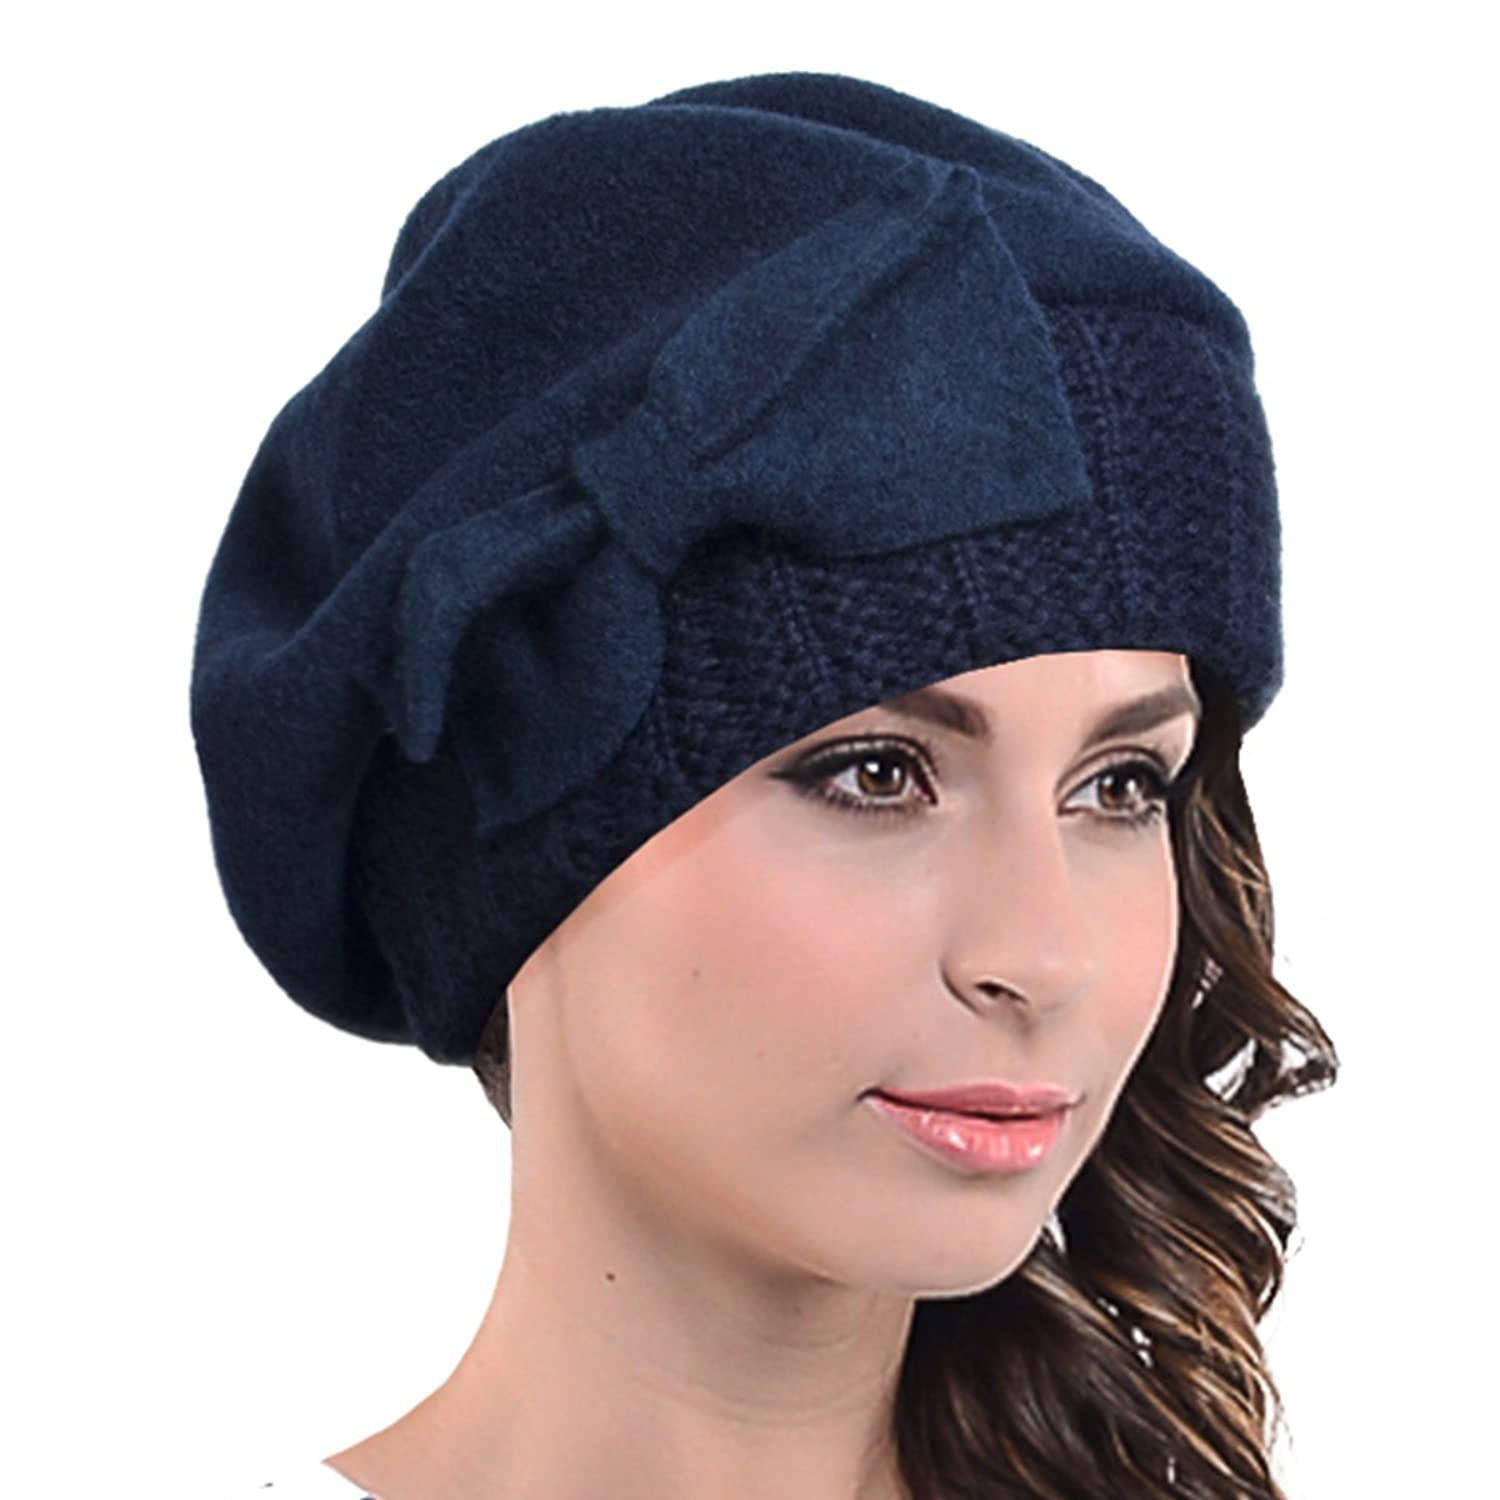 1920s Hairstyles History- Long Hair to Bobbed Hair Lady French Beret Wool Beret Chic Beanie Winter Hat Jf-br034 $21.99 AT vintagedancer.com